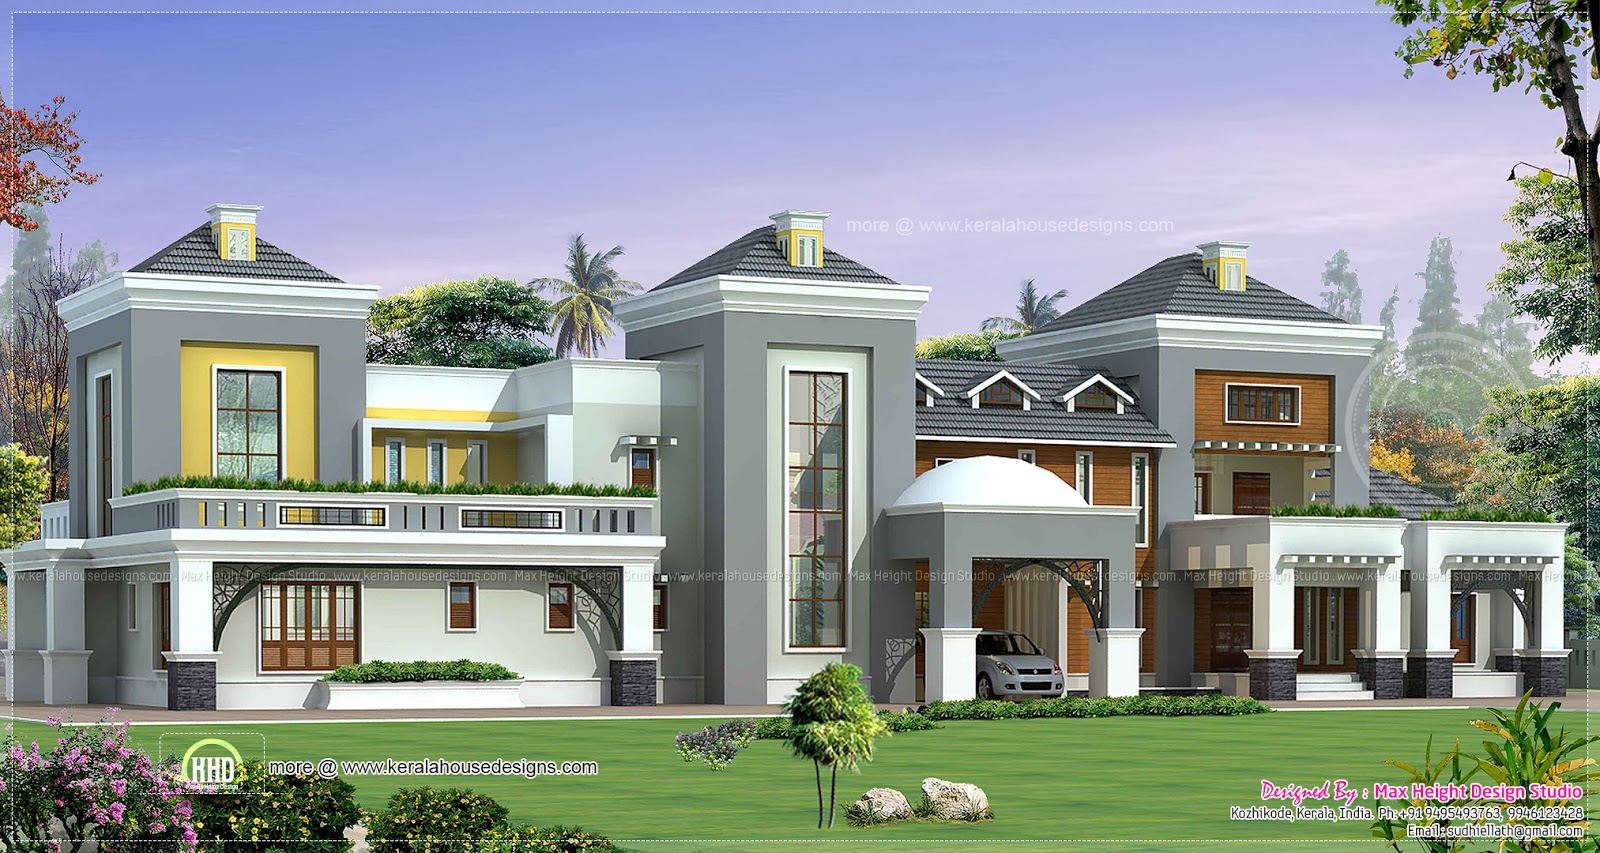 Luxury house plan with photo home kerala plans - Luxury houseplans ideas ...